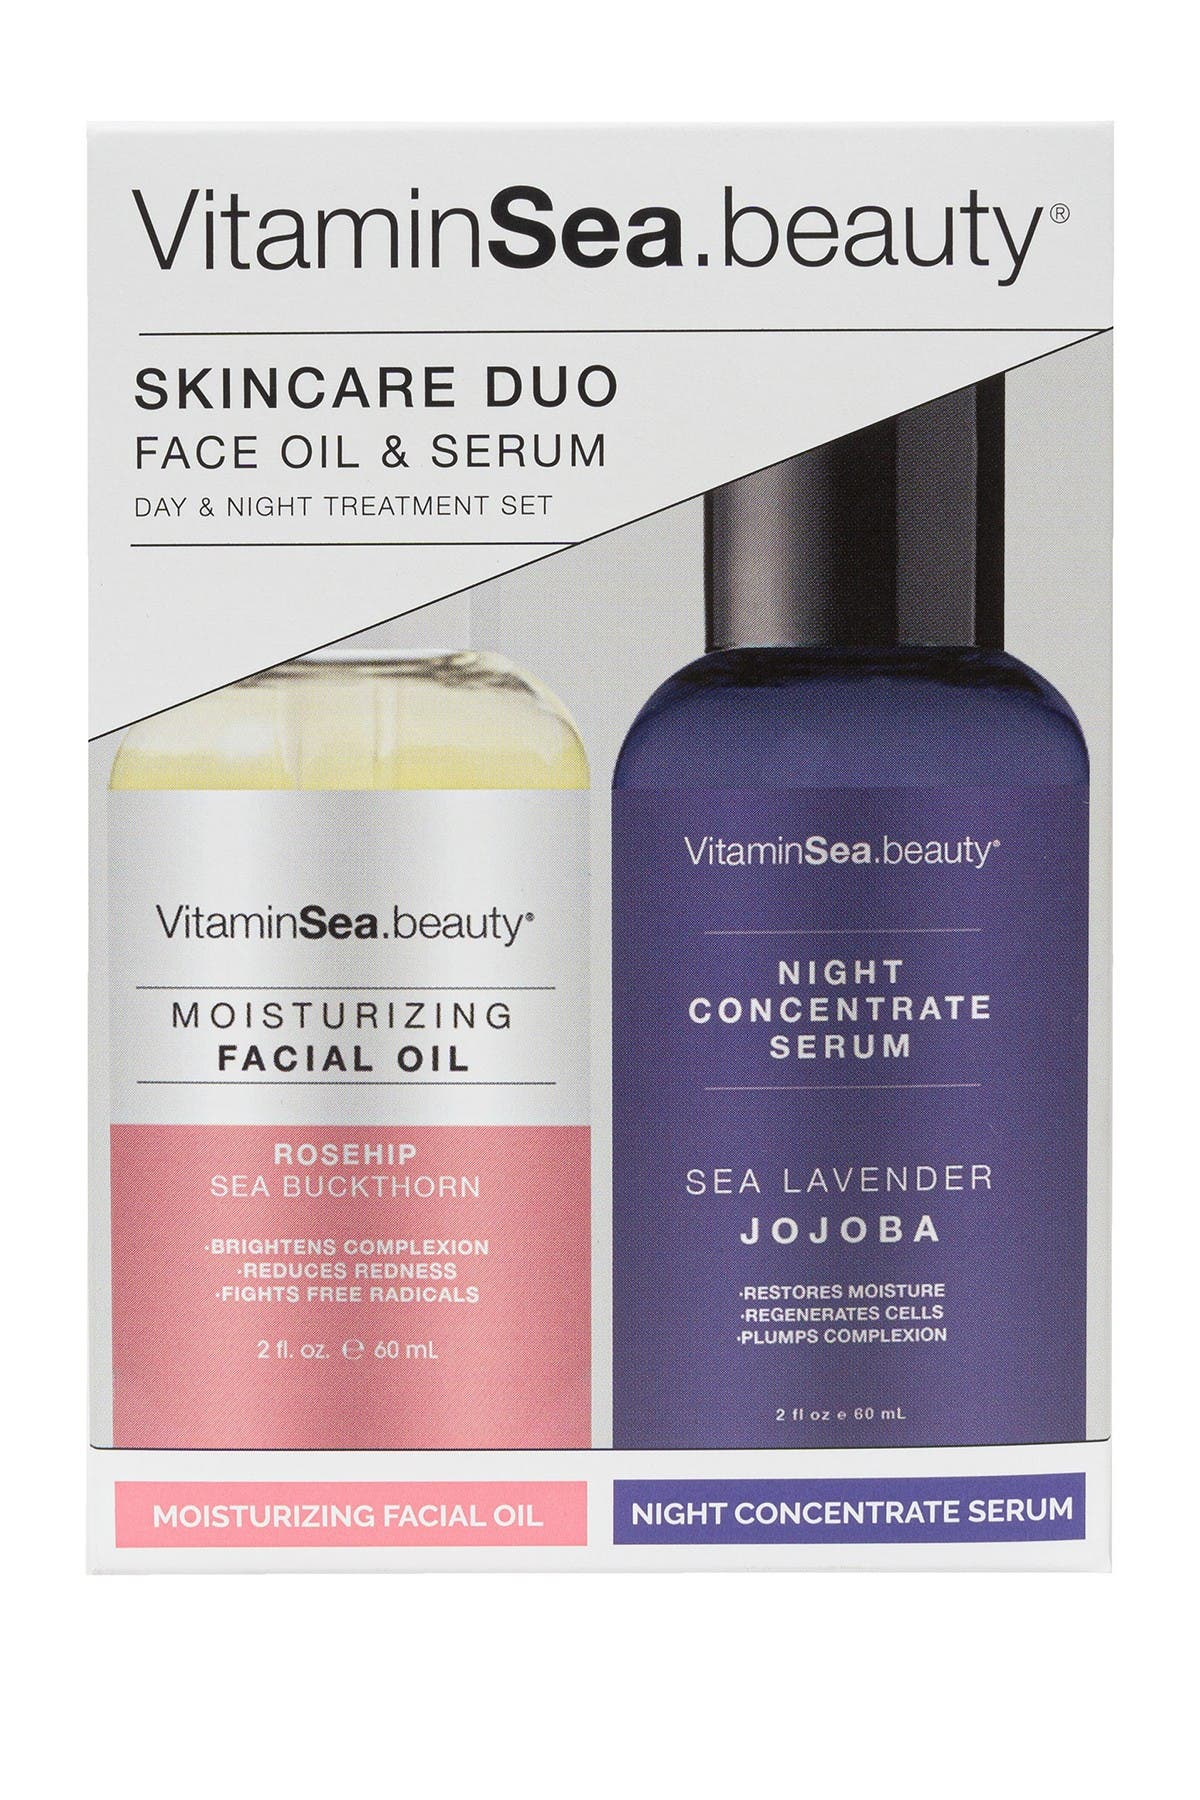 Image of VitaminSea.beauty Skincare Duo Moisturizing Face Oil & Night Concentrate Serum